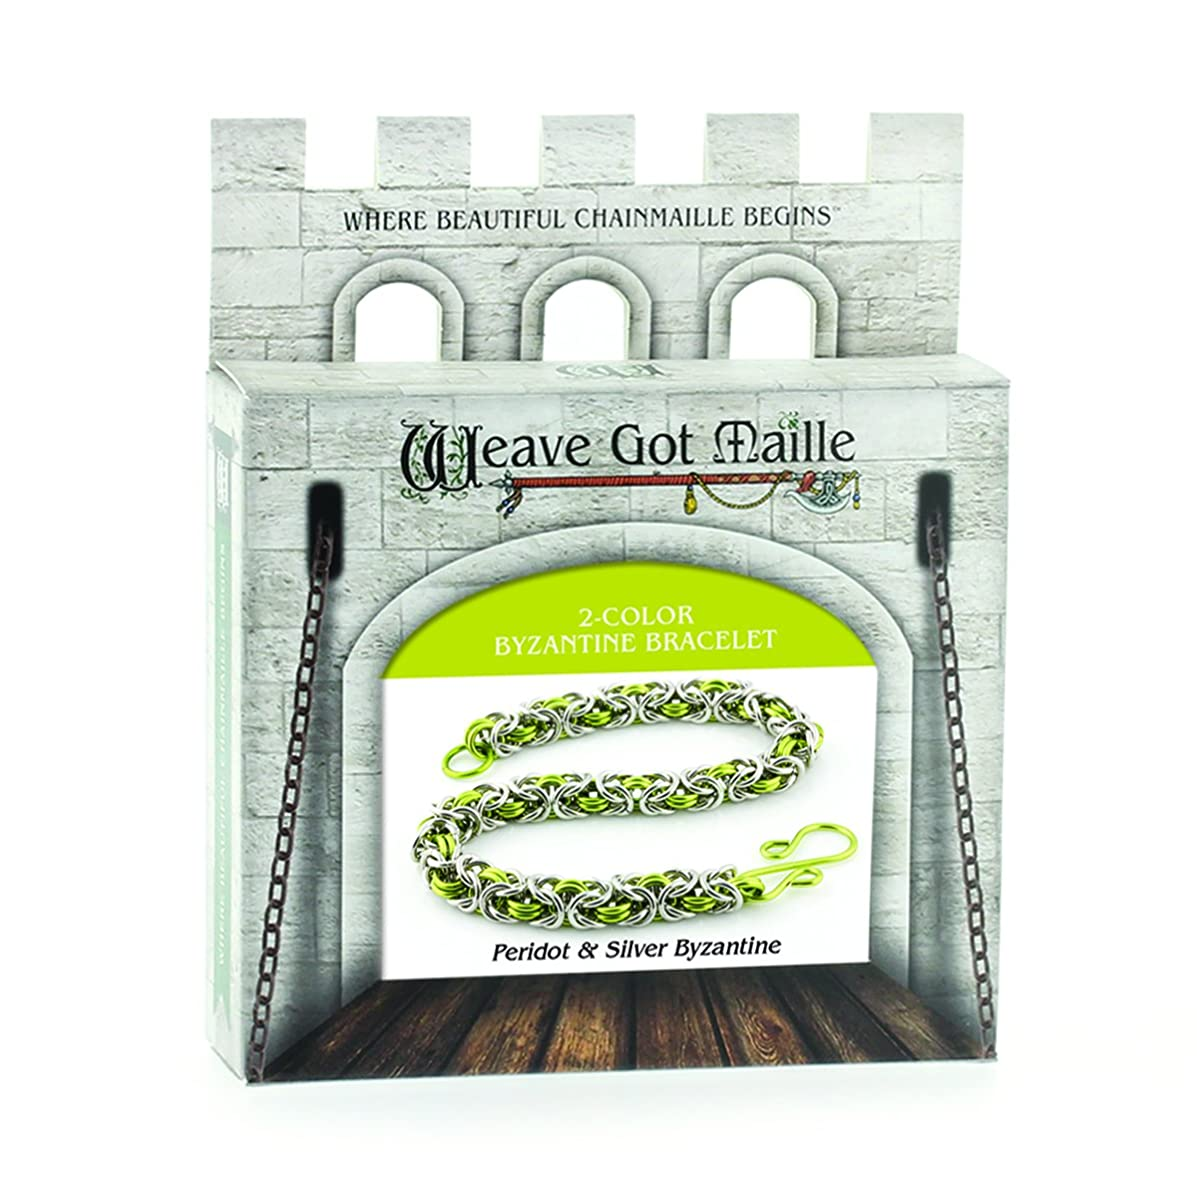 Weave Got Maille 2-Color Byzantine Chain Maille Bracelet Kit, Peridot and Silver